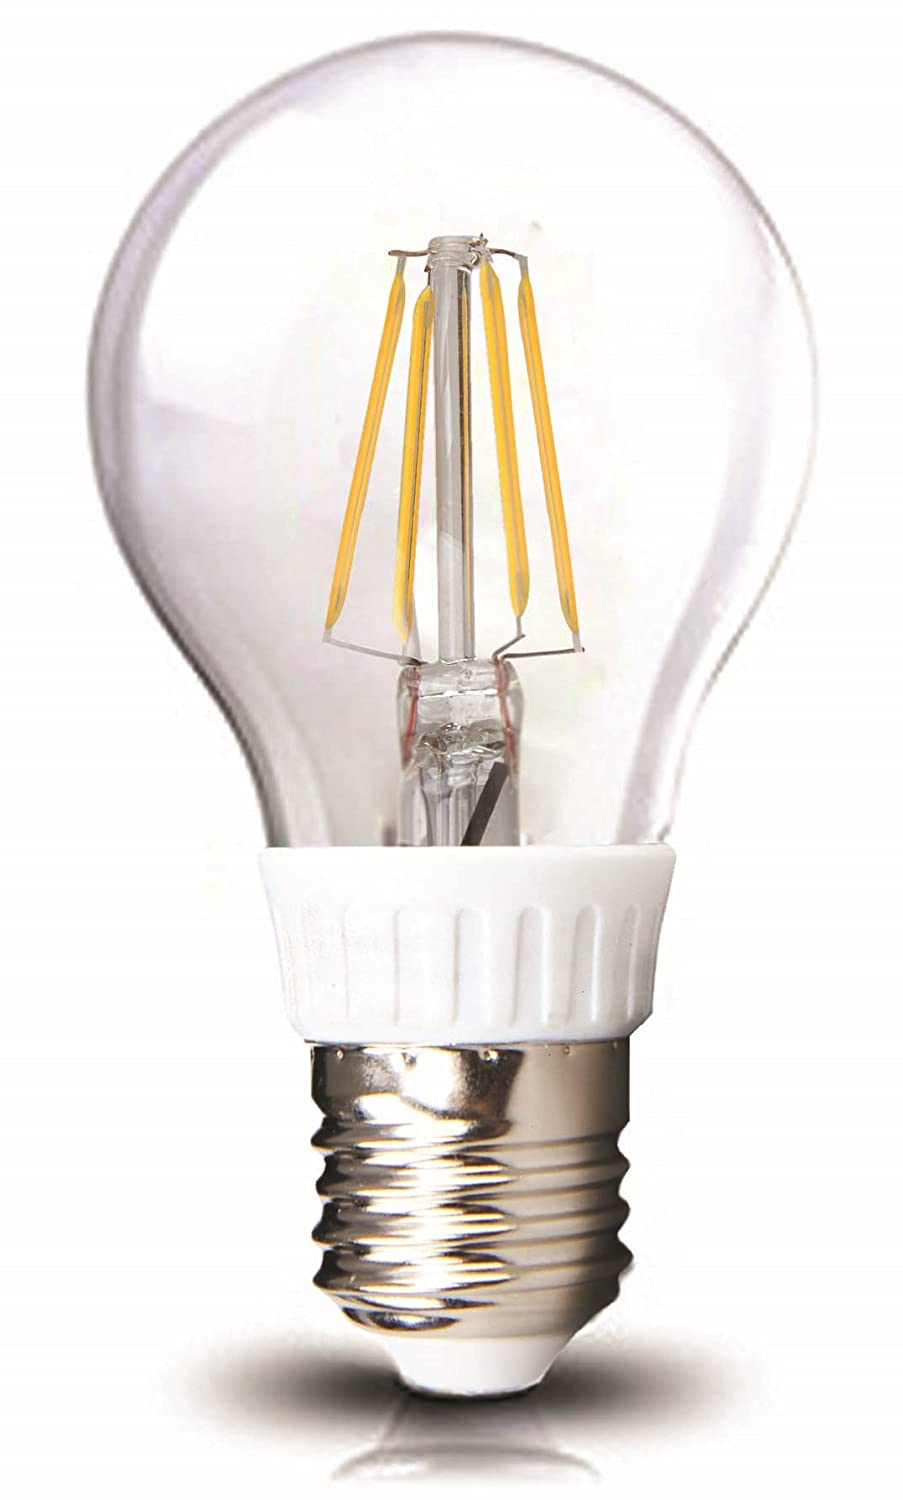 Components How Do Filament Led Bulbs Work Looking Very Similar To Incandescent Bulbs